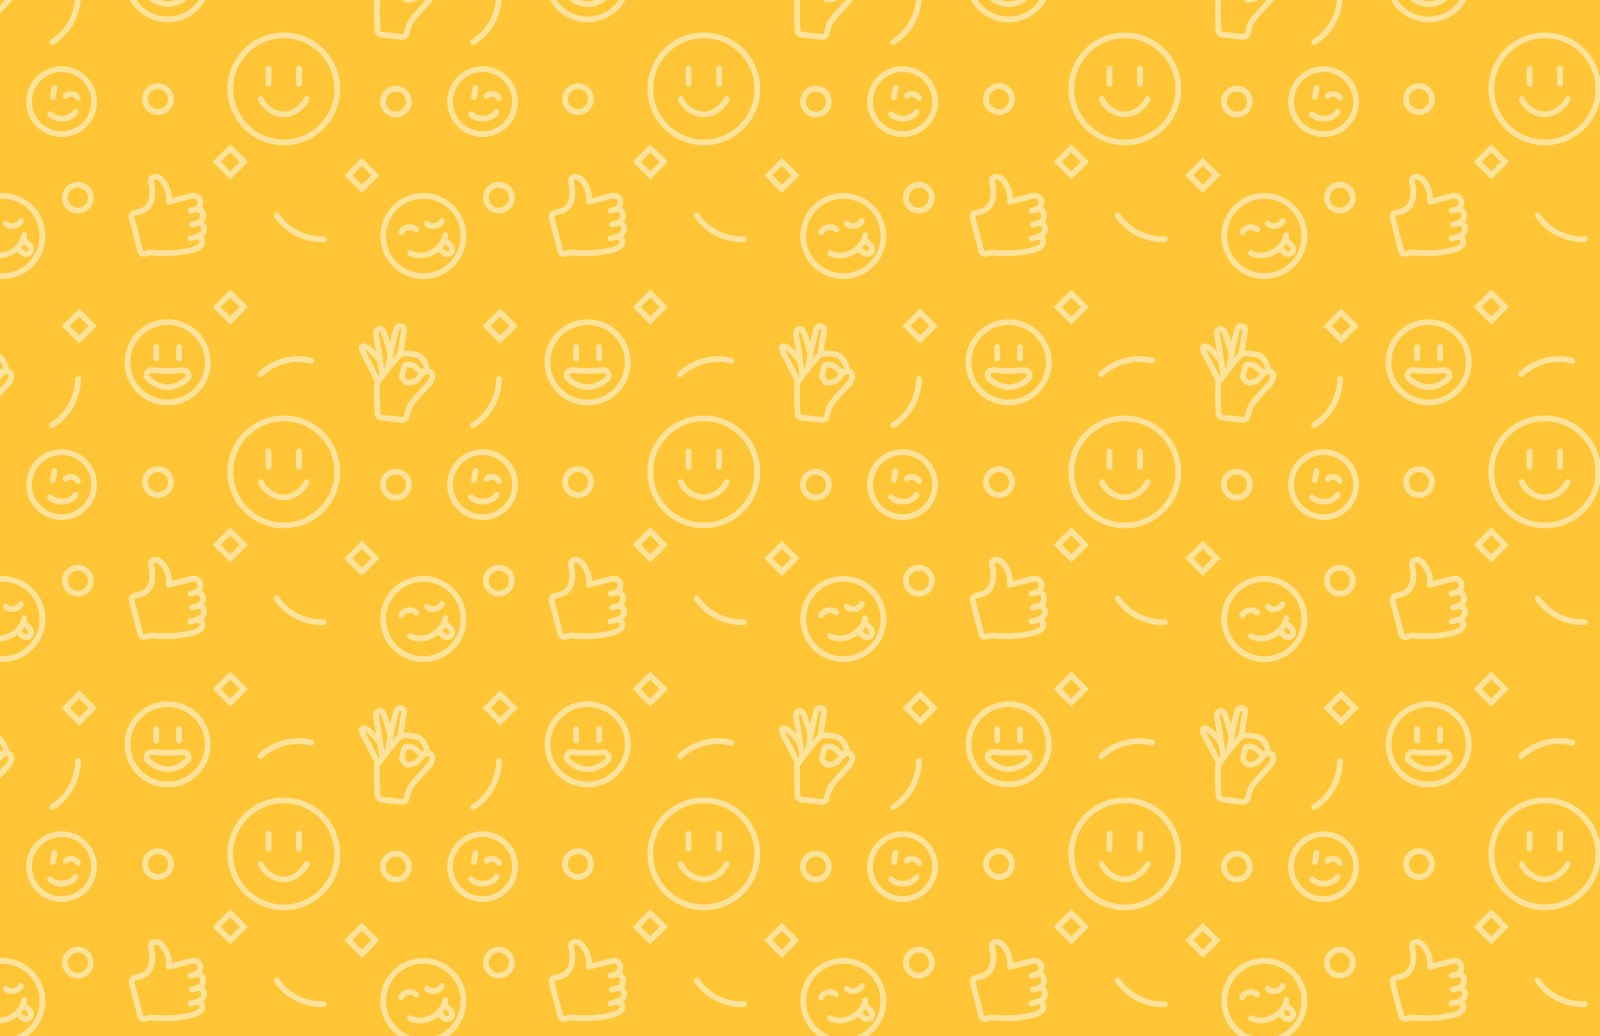 Seamless  Icon  Patterns 2  Preview 1A